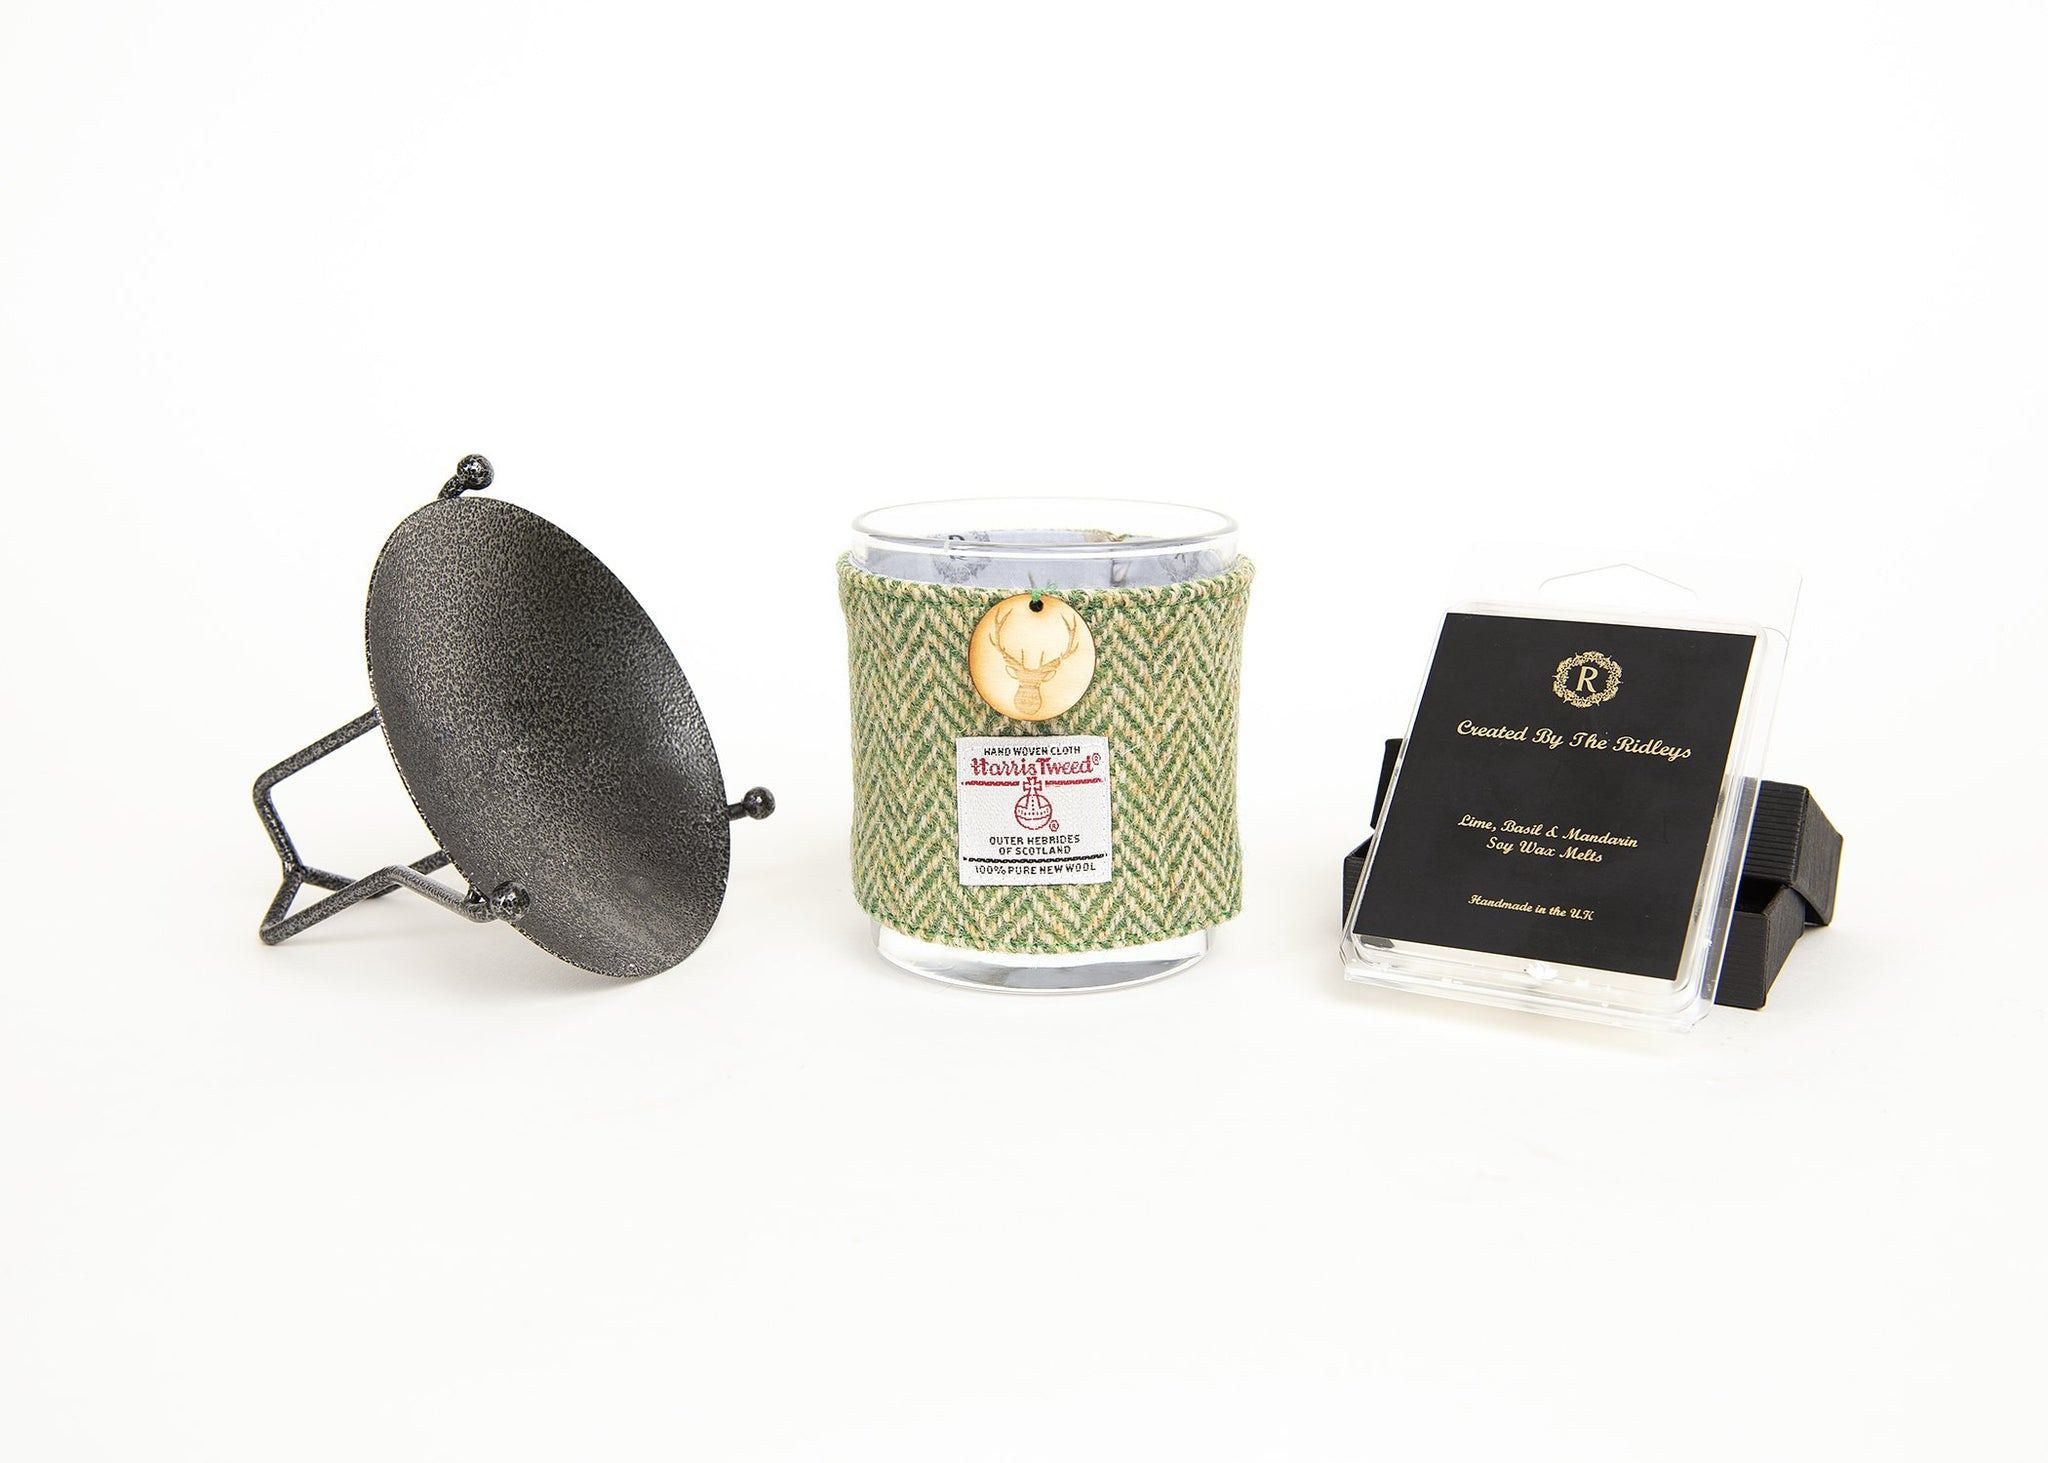 Candle and Wax Melter Gift Set